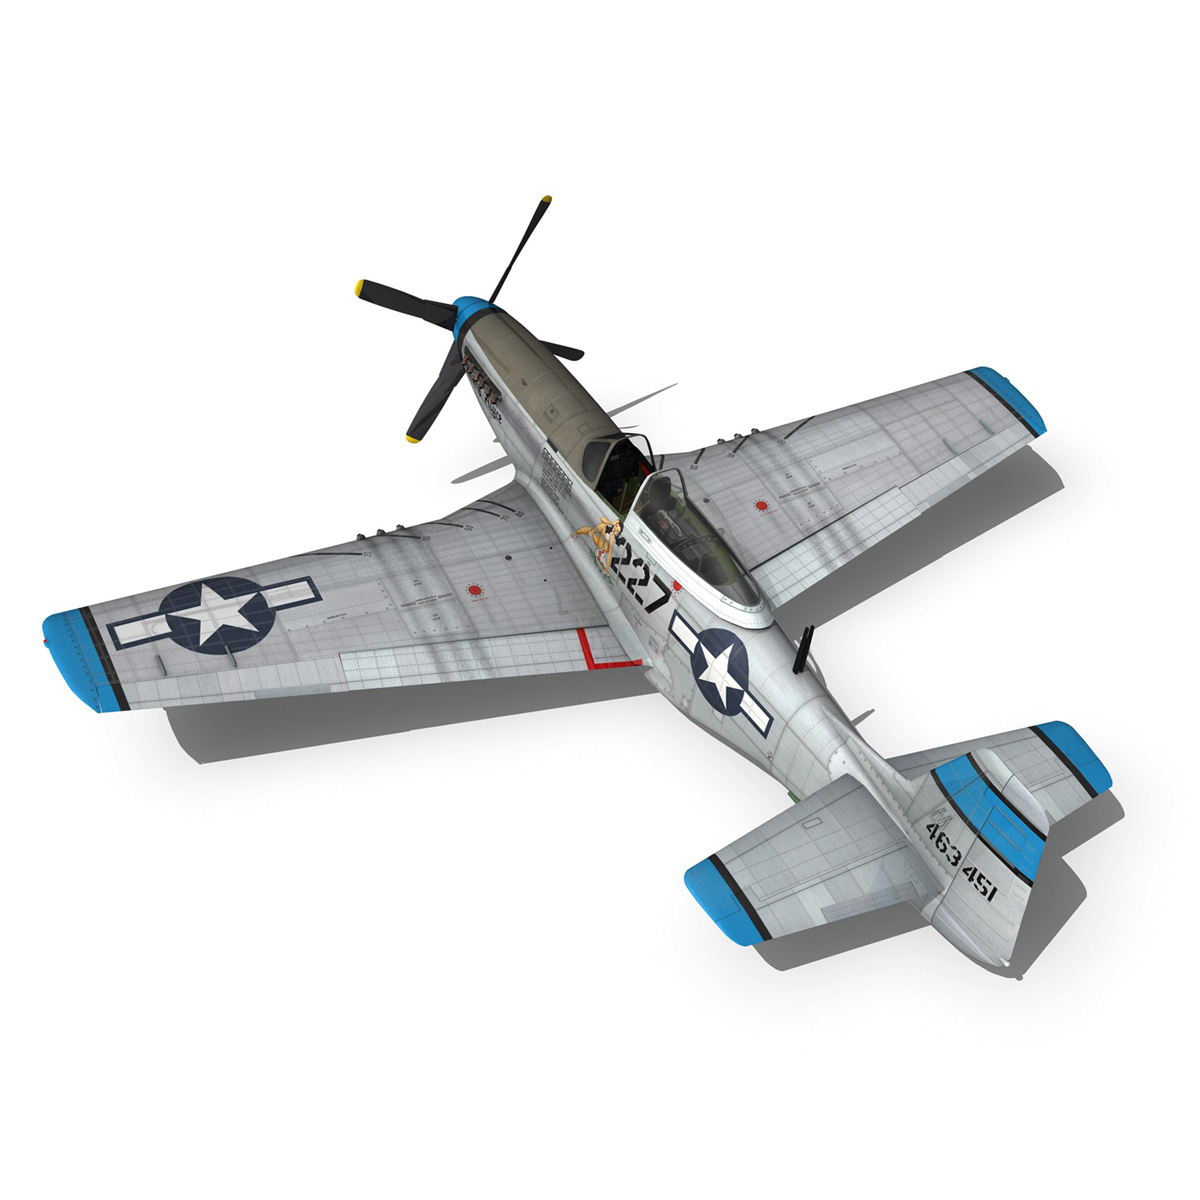 north american p-51d – mustang – mary alyce 3d model 3ds fbx c4d lwo obj 267578